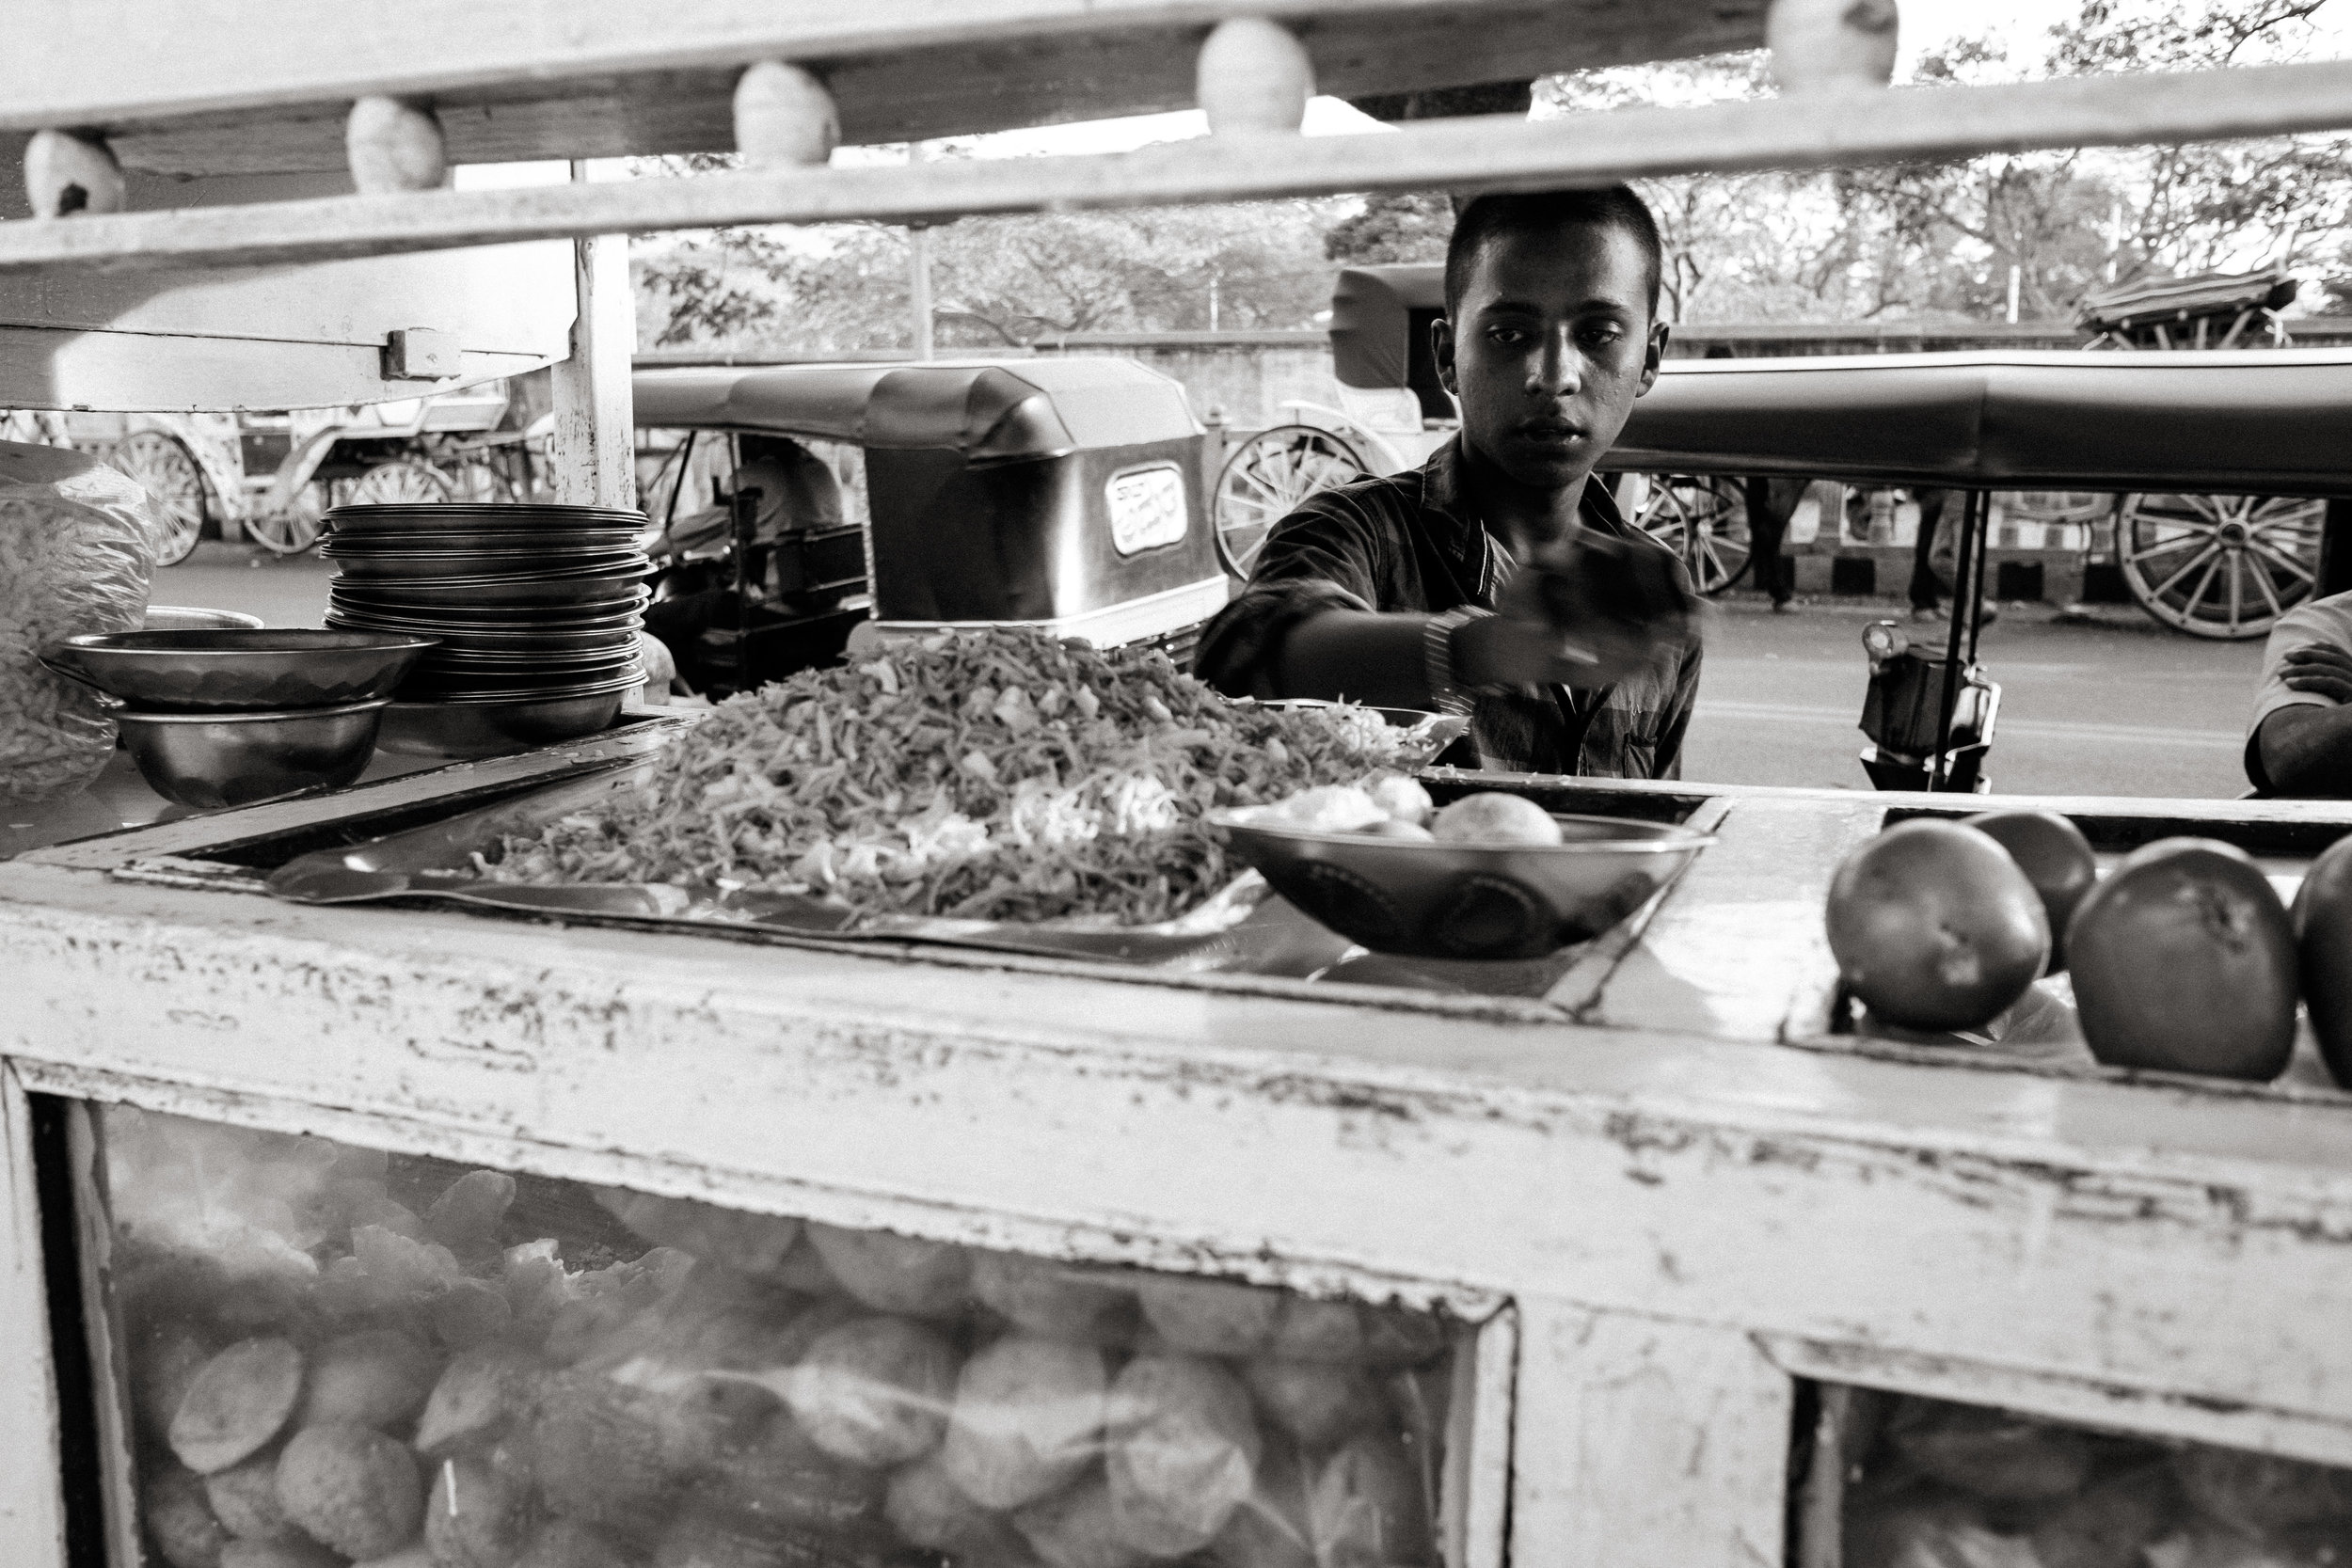 A street food vendor in Mysore, India.